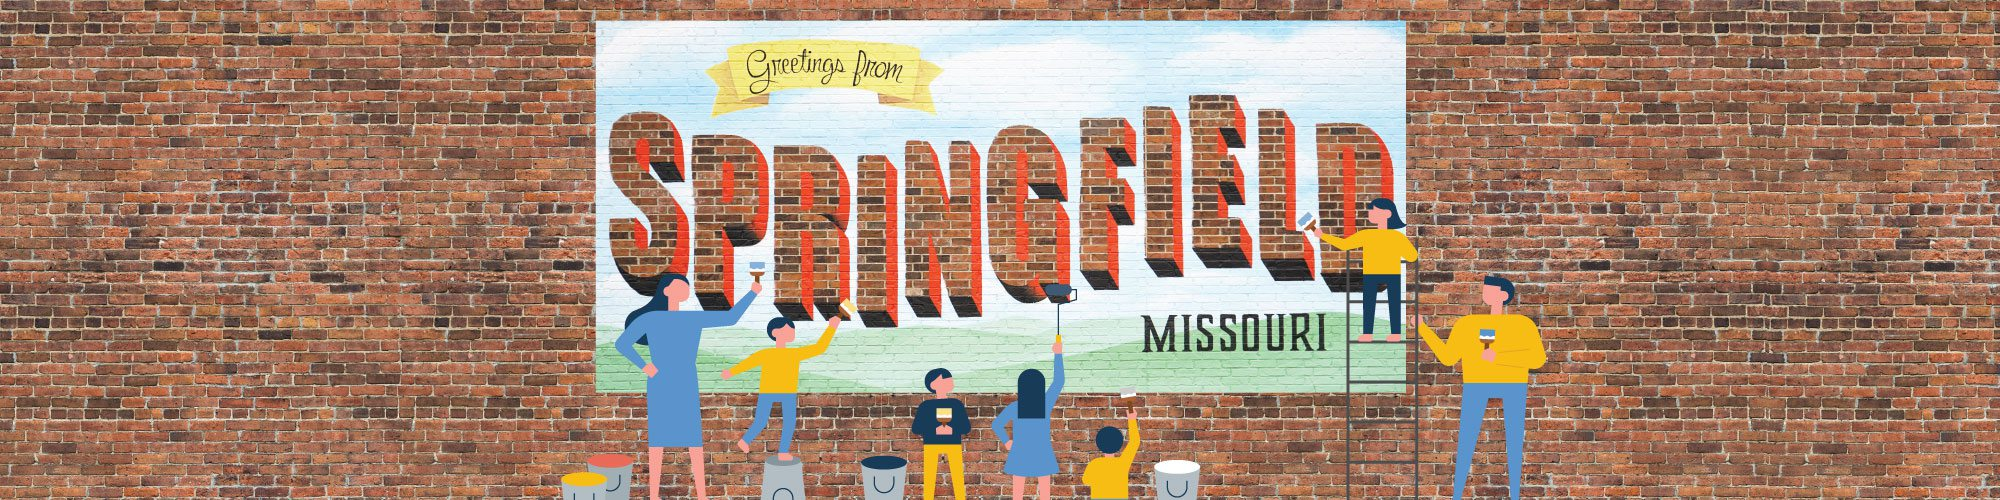 Greetings from Springfield Missouri mural